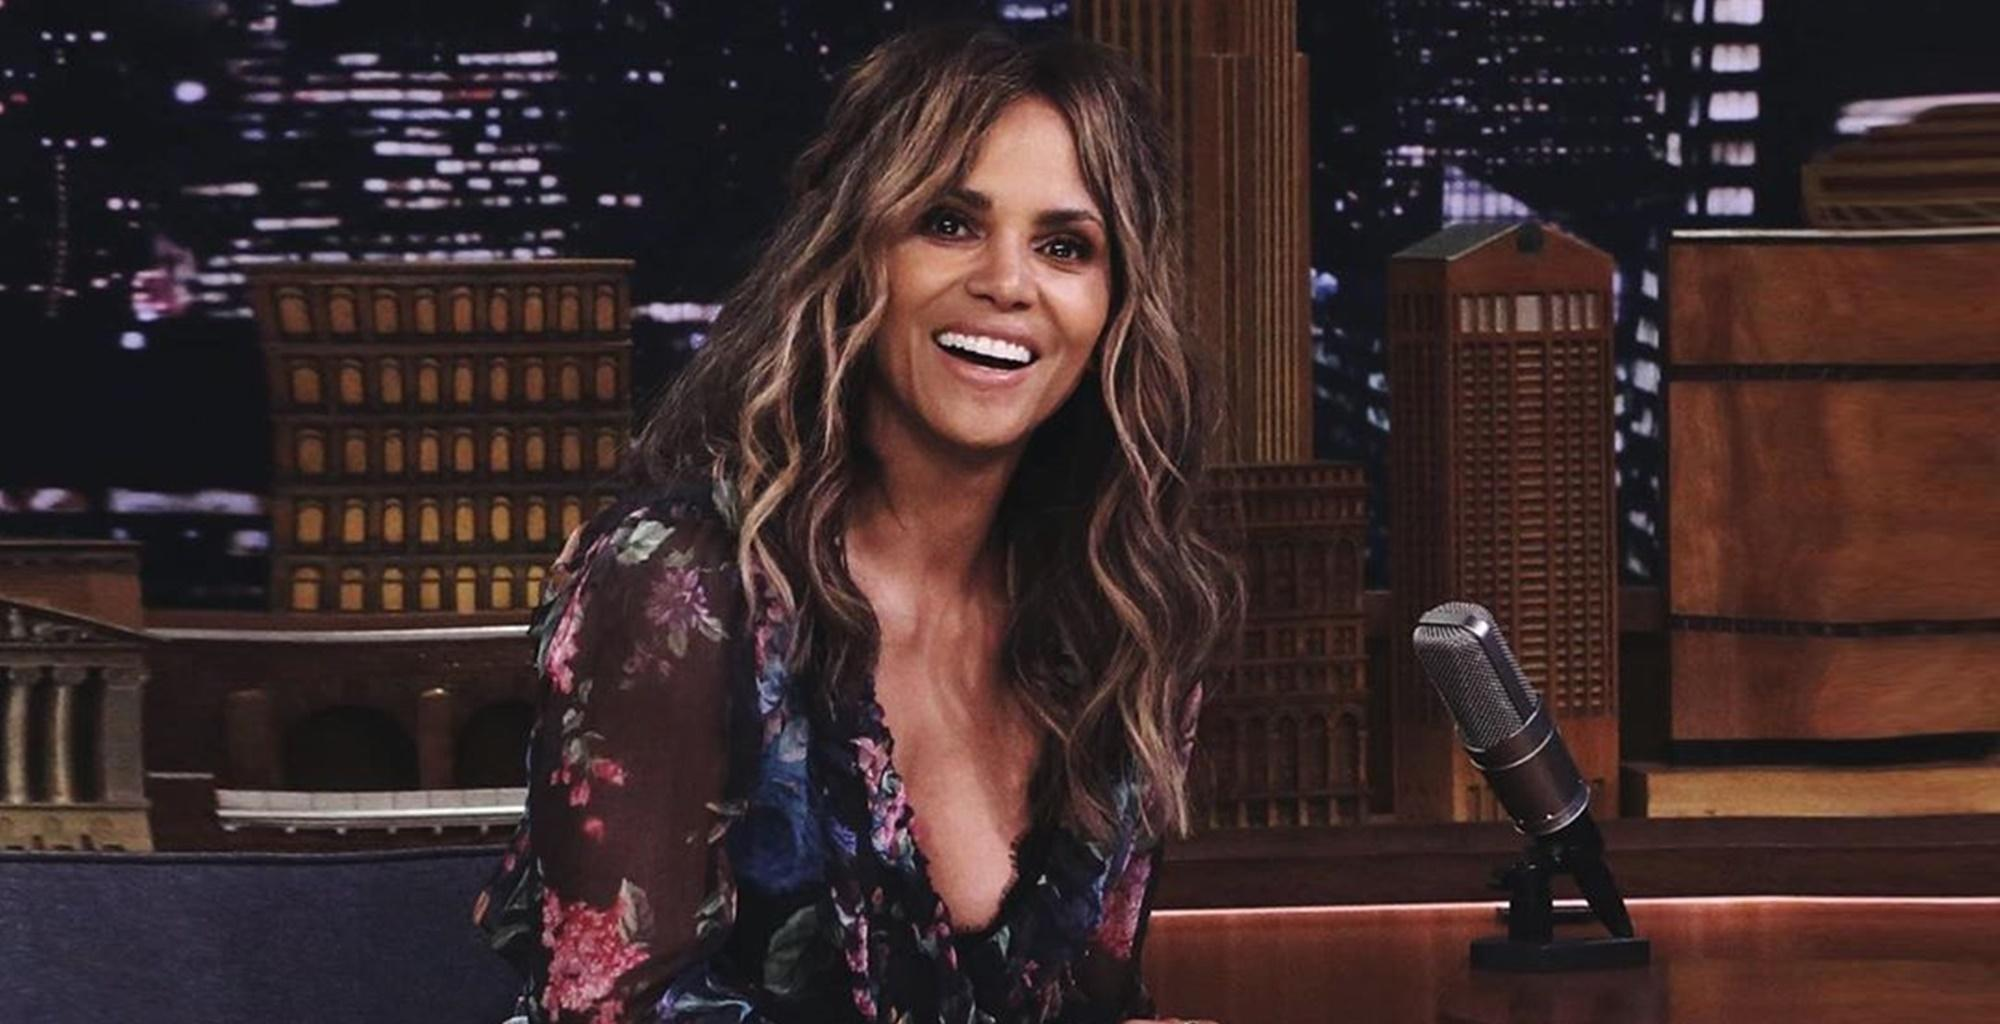 Halle Berry Shows Off Toned Figure In Picture With Keanu Reeves